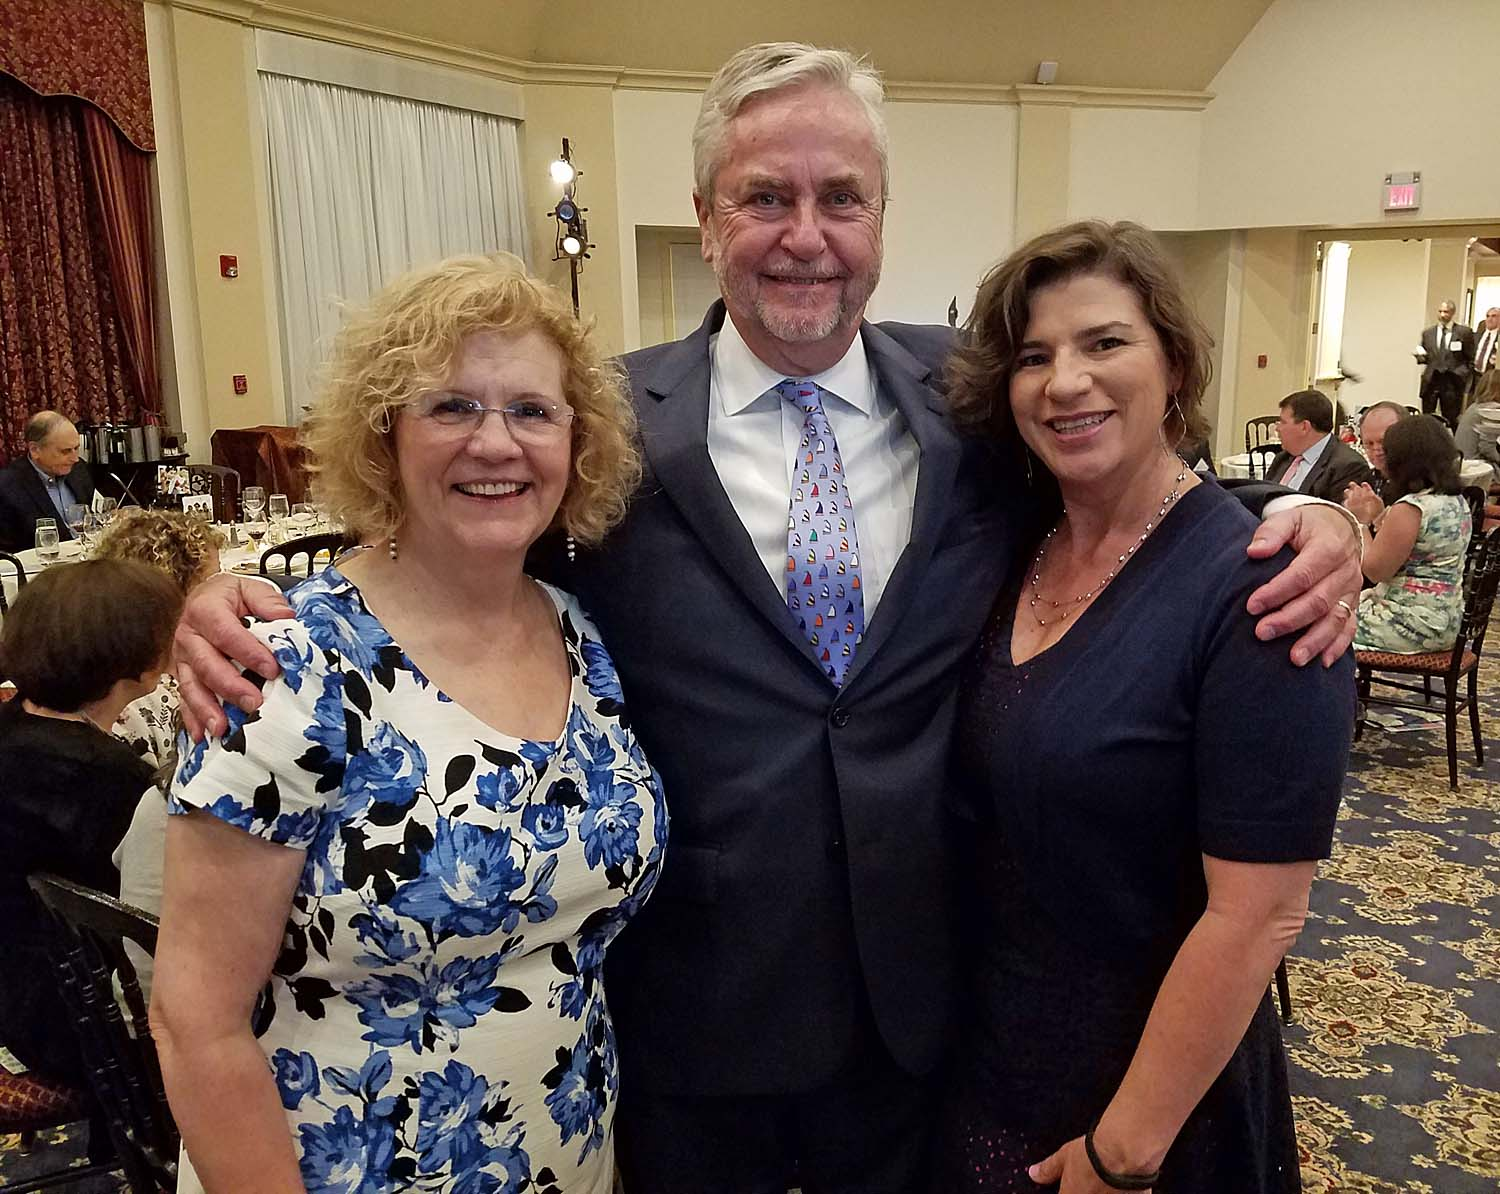 Betsy Steward, Director of Development of Westchester Children's Association, Douglas Gould, Westchester Children's Association board of directors' president (also President of Douglas Gould & Co.) and Jennifer Flowers, Founder and CEO, Accreditation Guru.